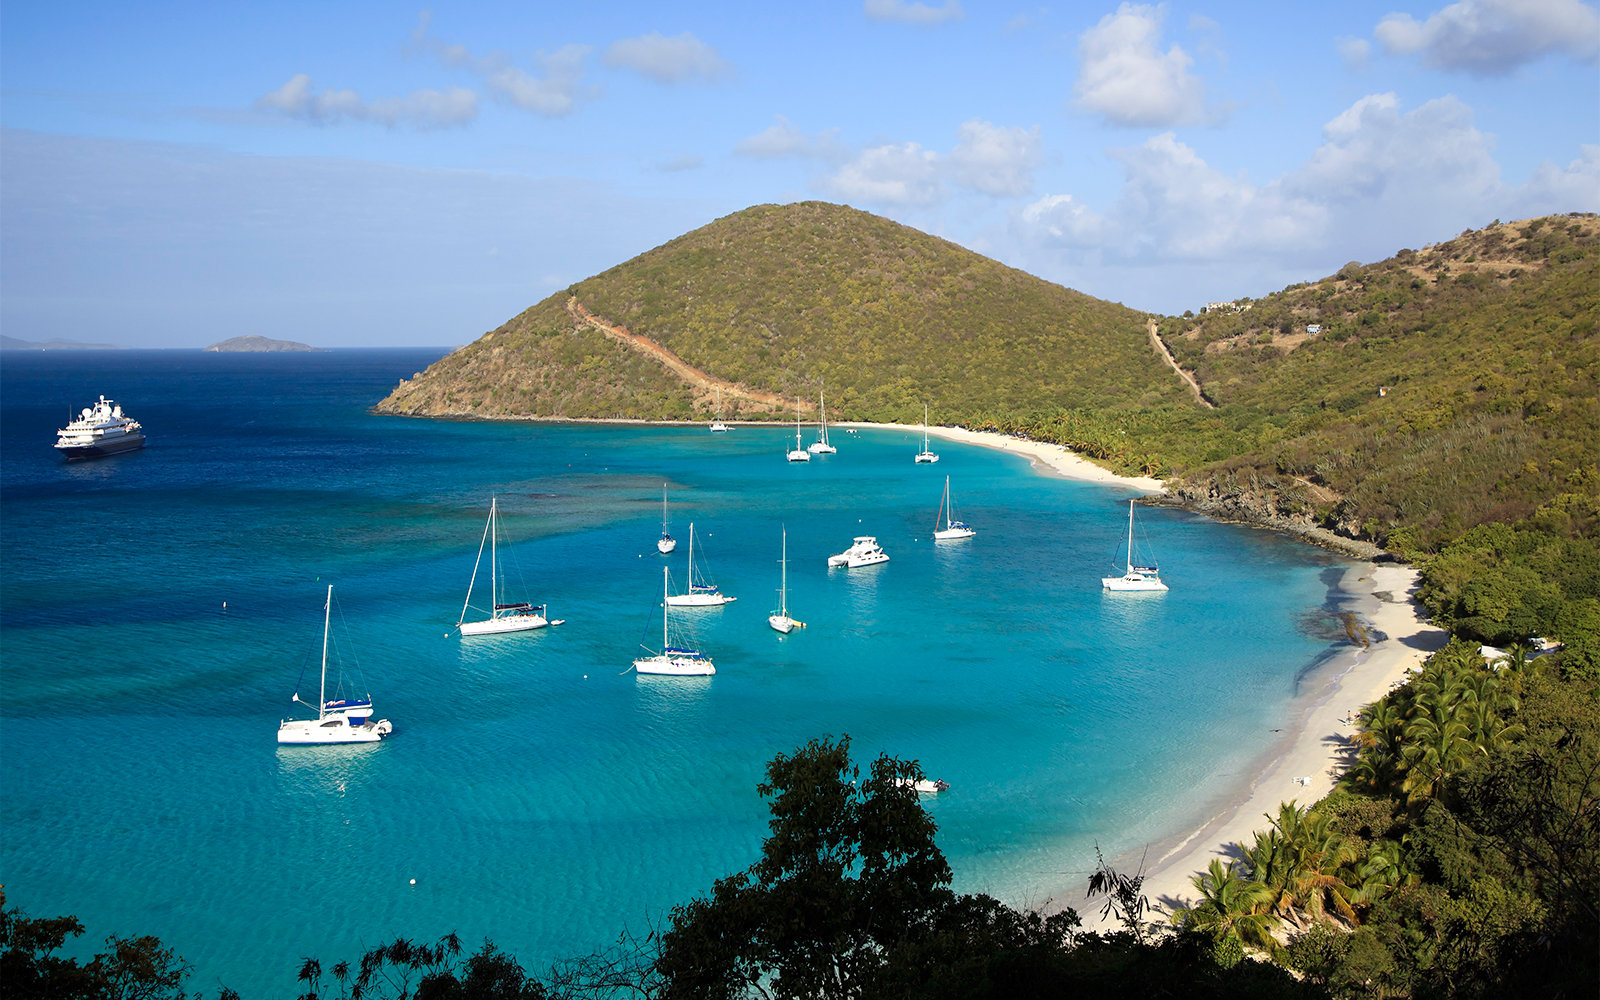 15. Jost Van Dyke, British Virgin Islands